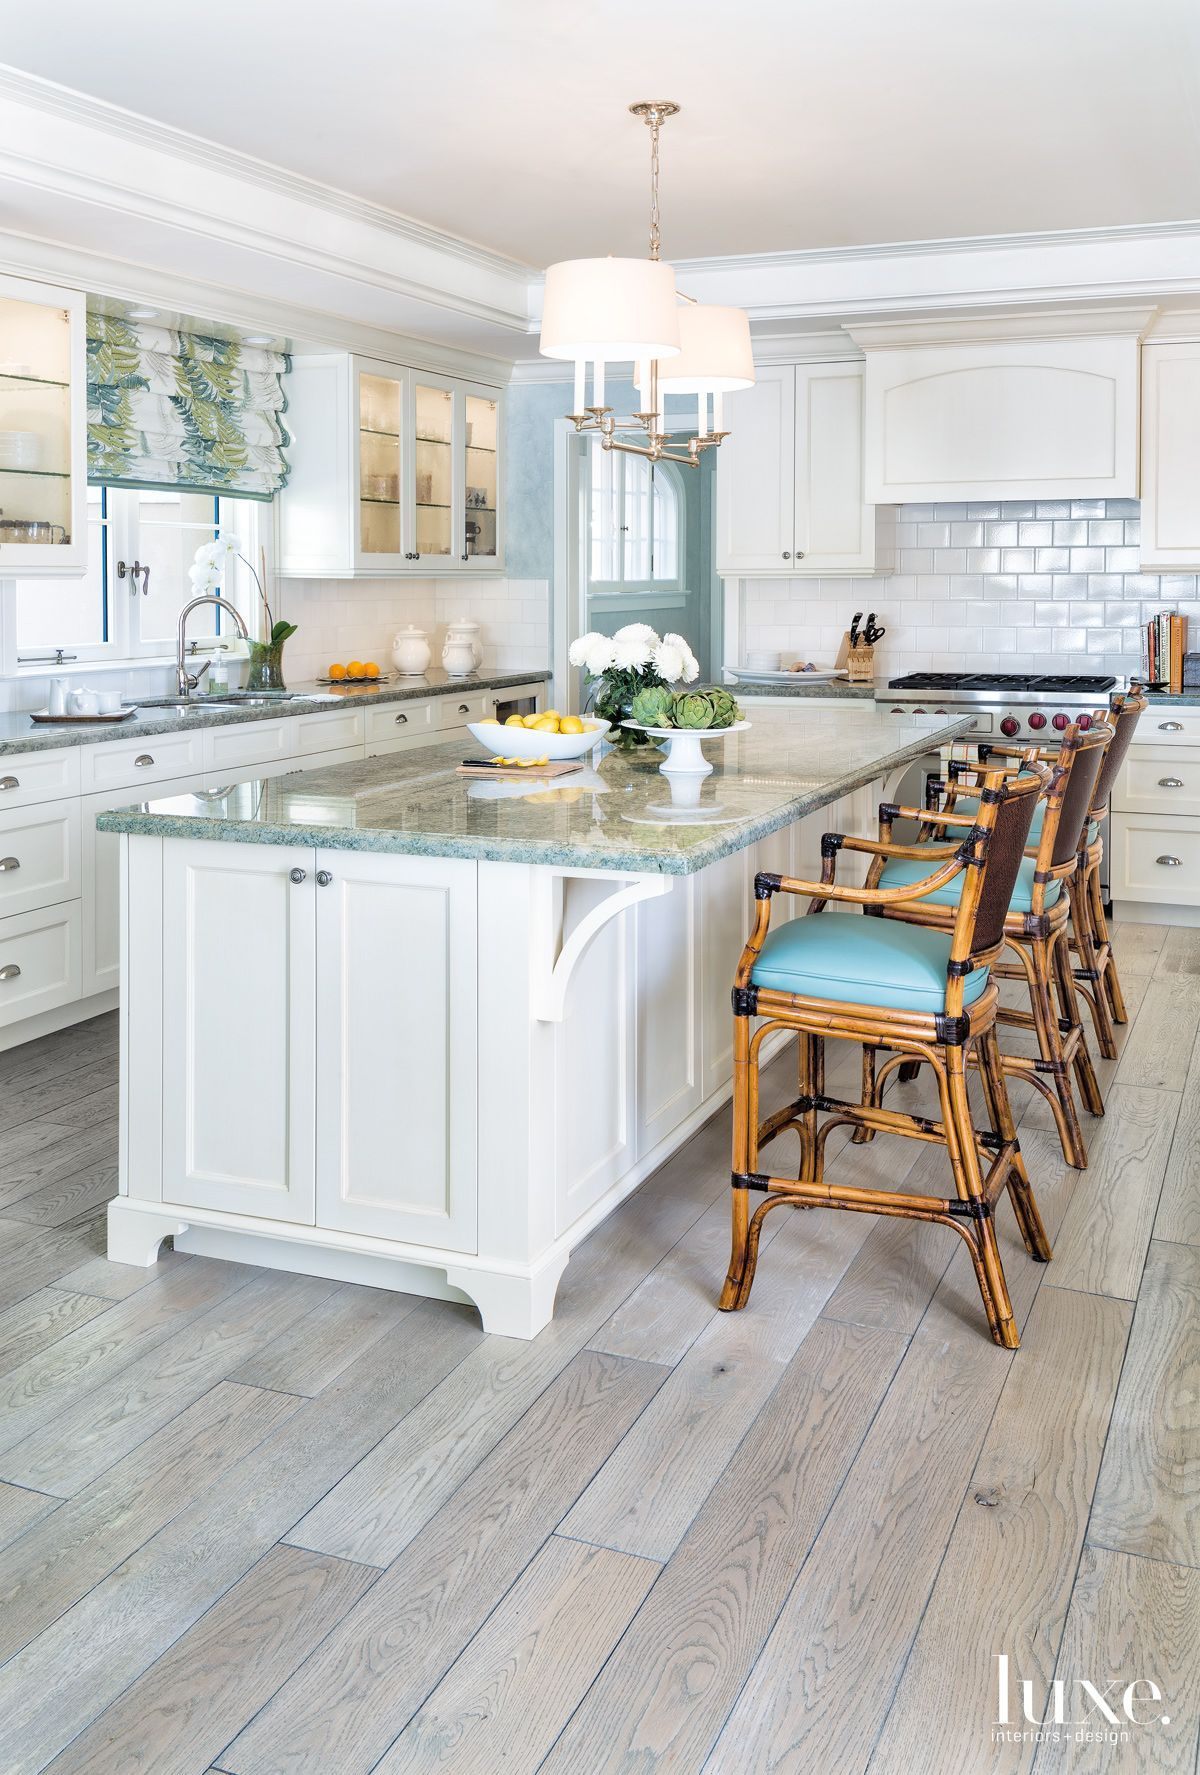 Interior Kitchens Coastal Kitchen Allison Paladino Interior Design Coastal